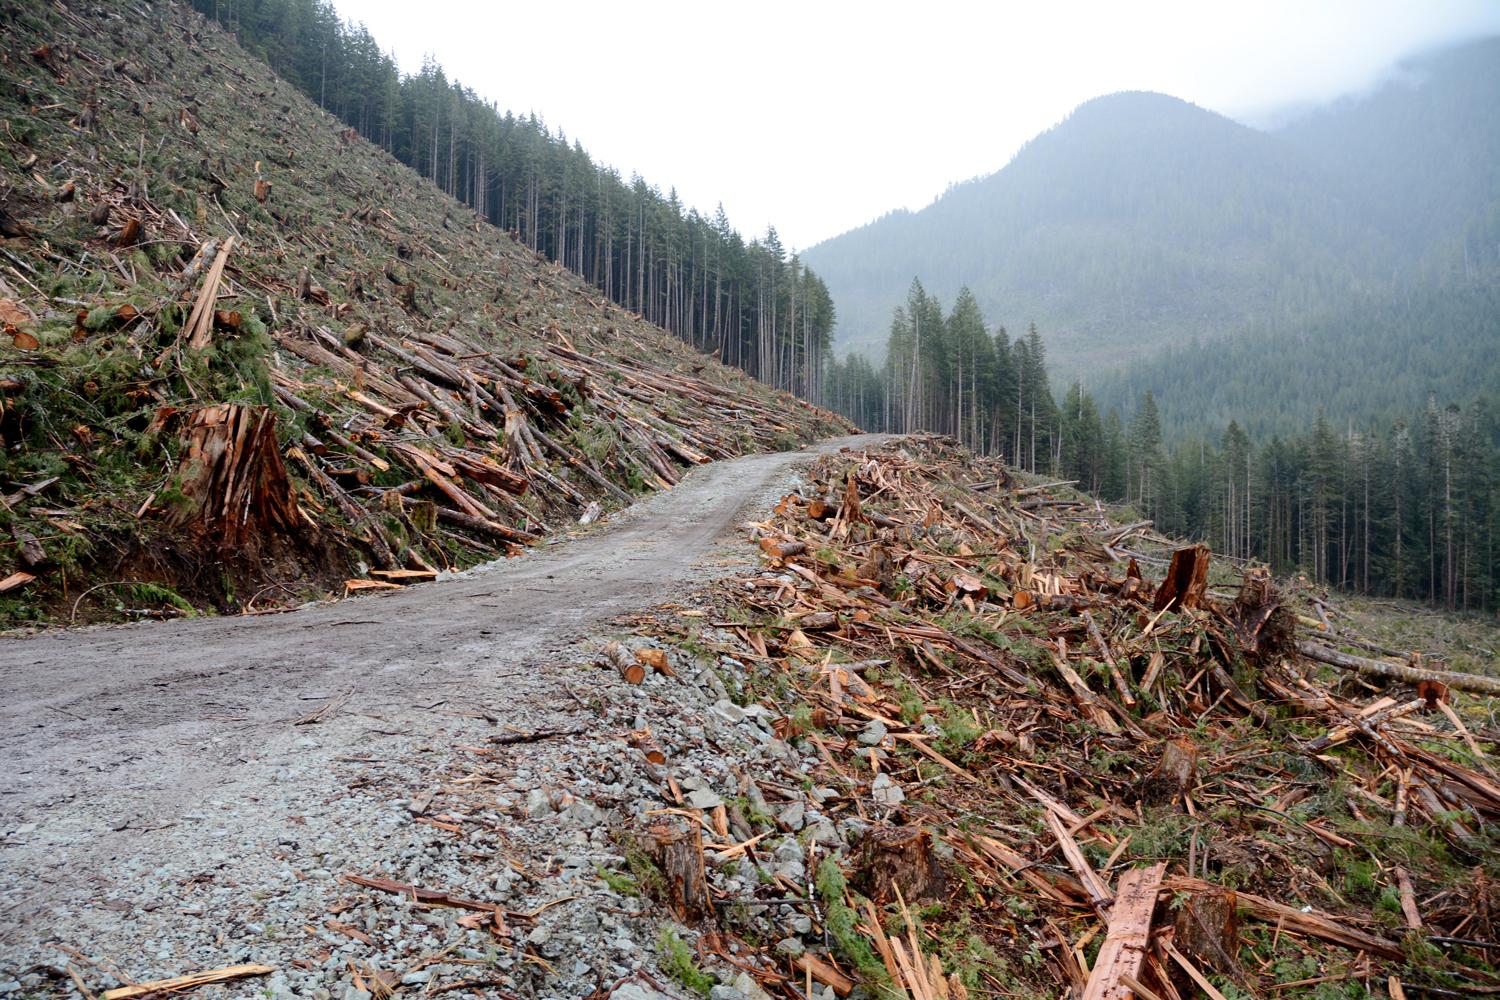 A clear-cut logging block on Vancouver Island, British Columbia, Canada